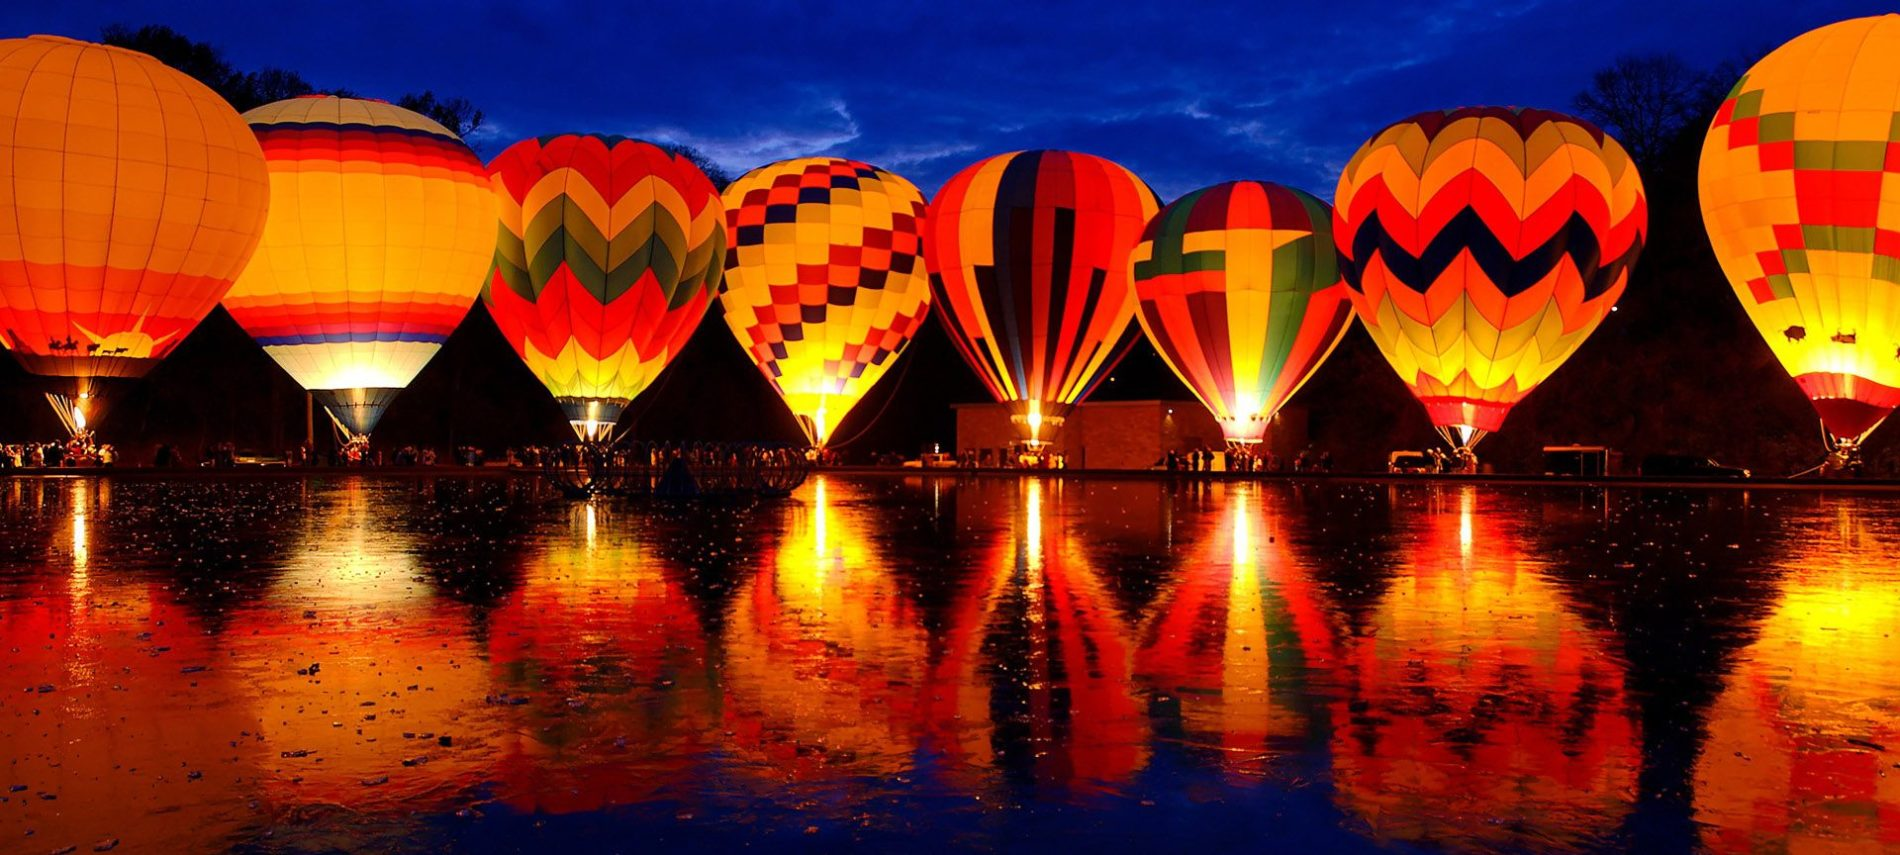 night scene of illuminated colorful balloons along a lake in Quechee vermont